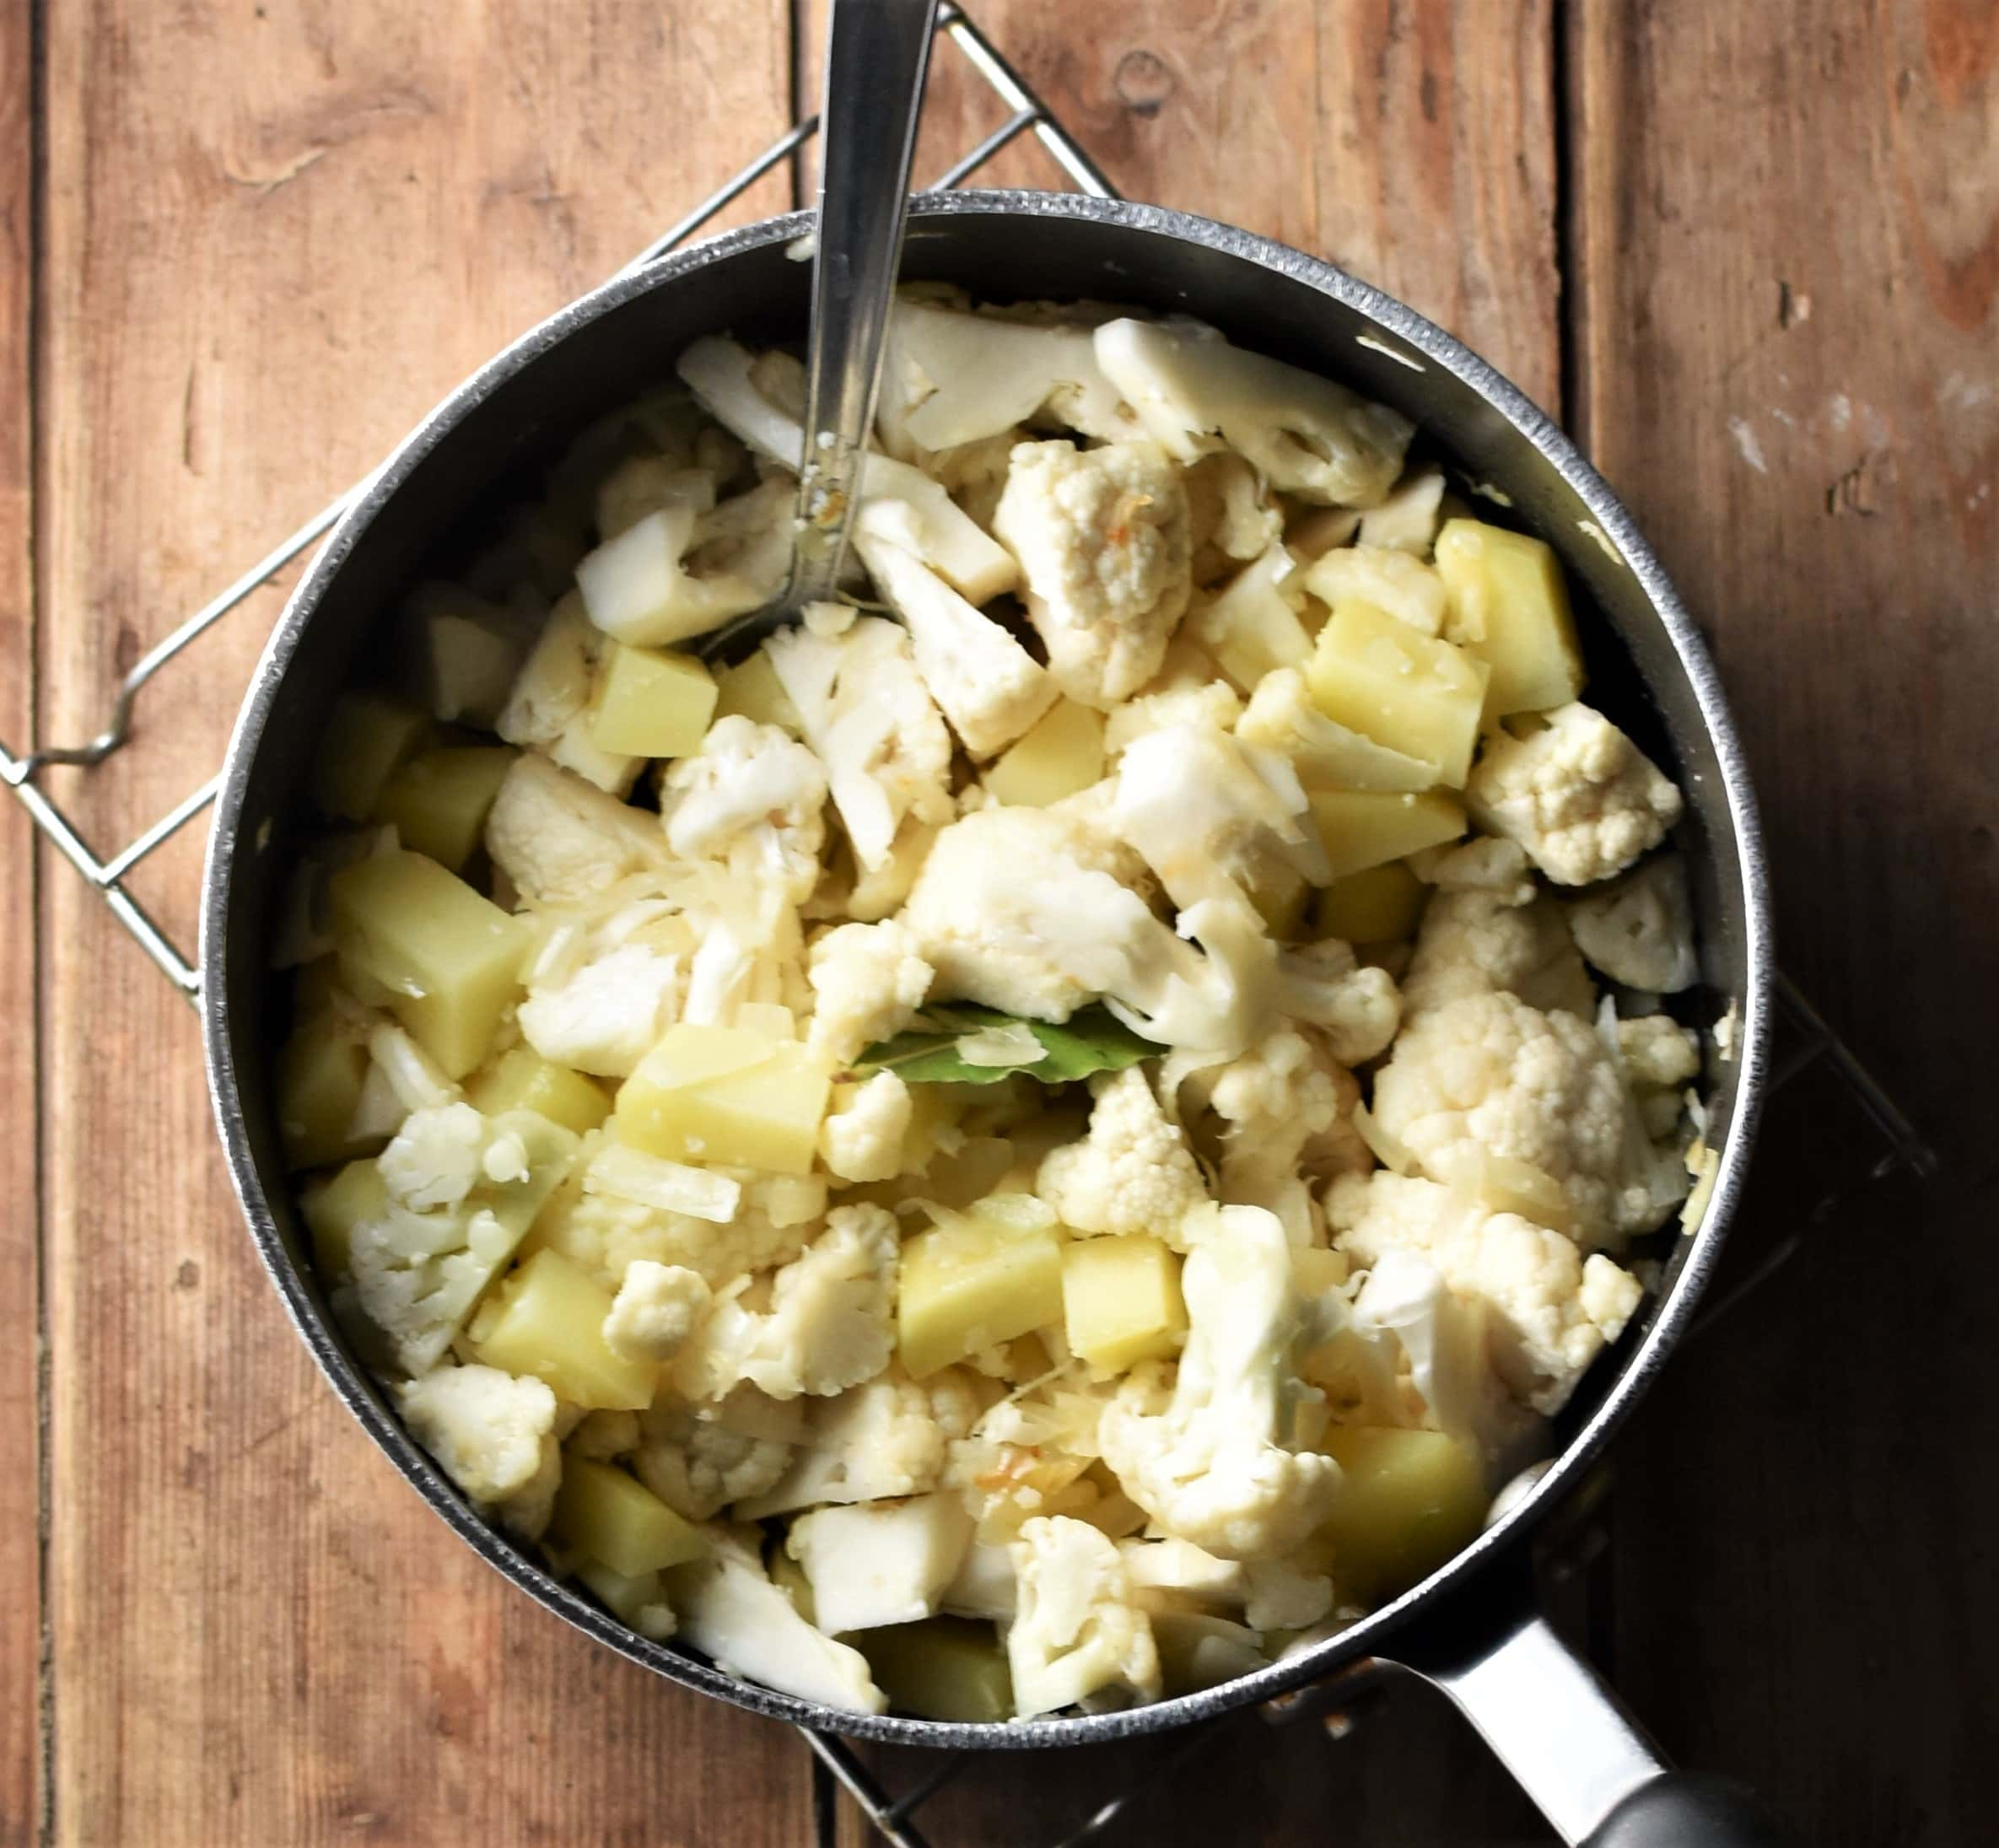 Cauliflower pieces and cubed potatoes in large pot with spoon.